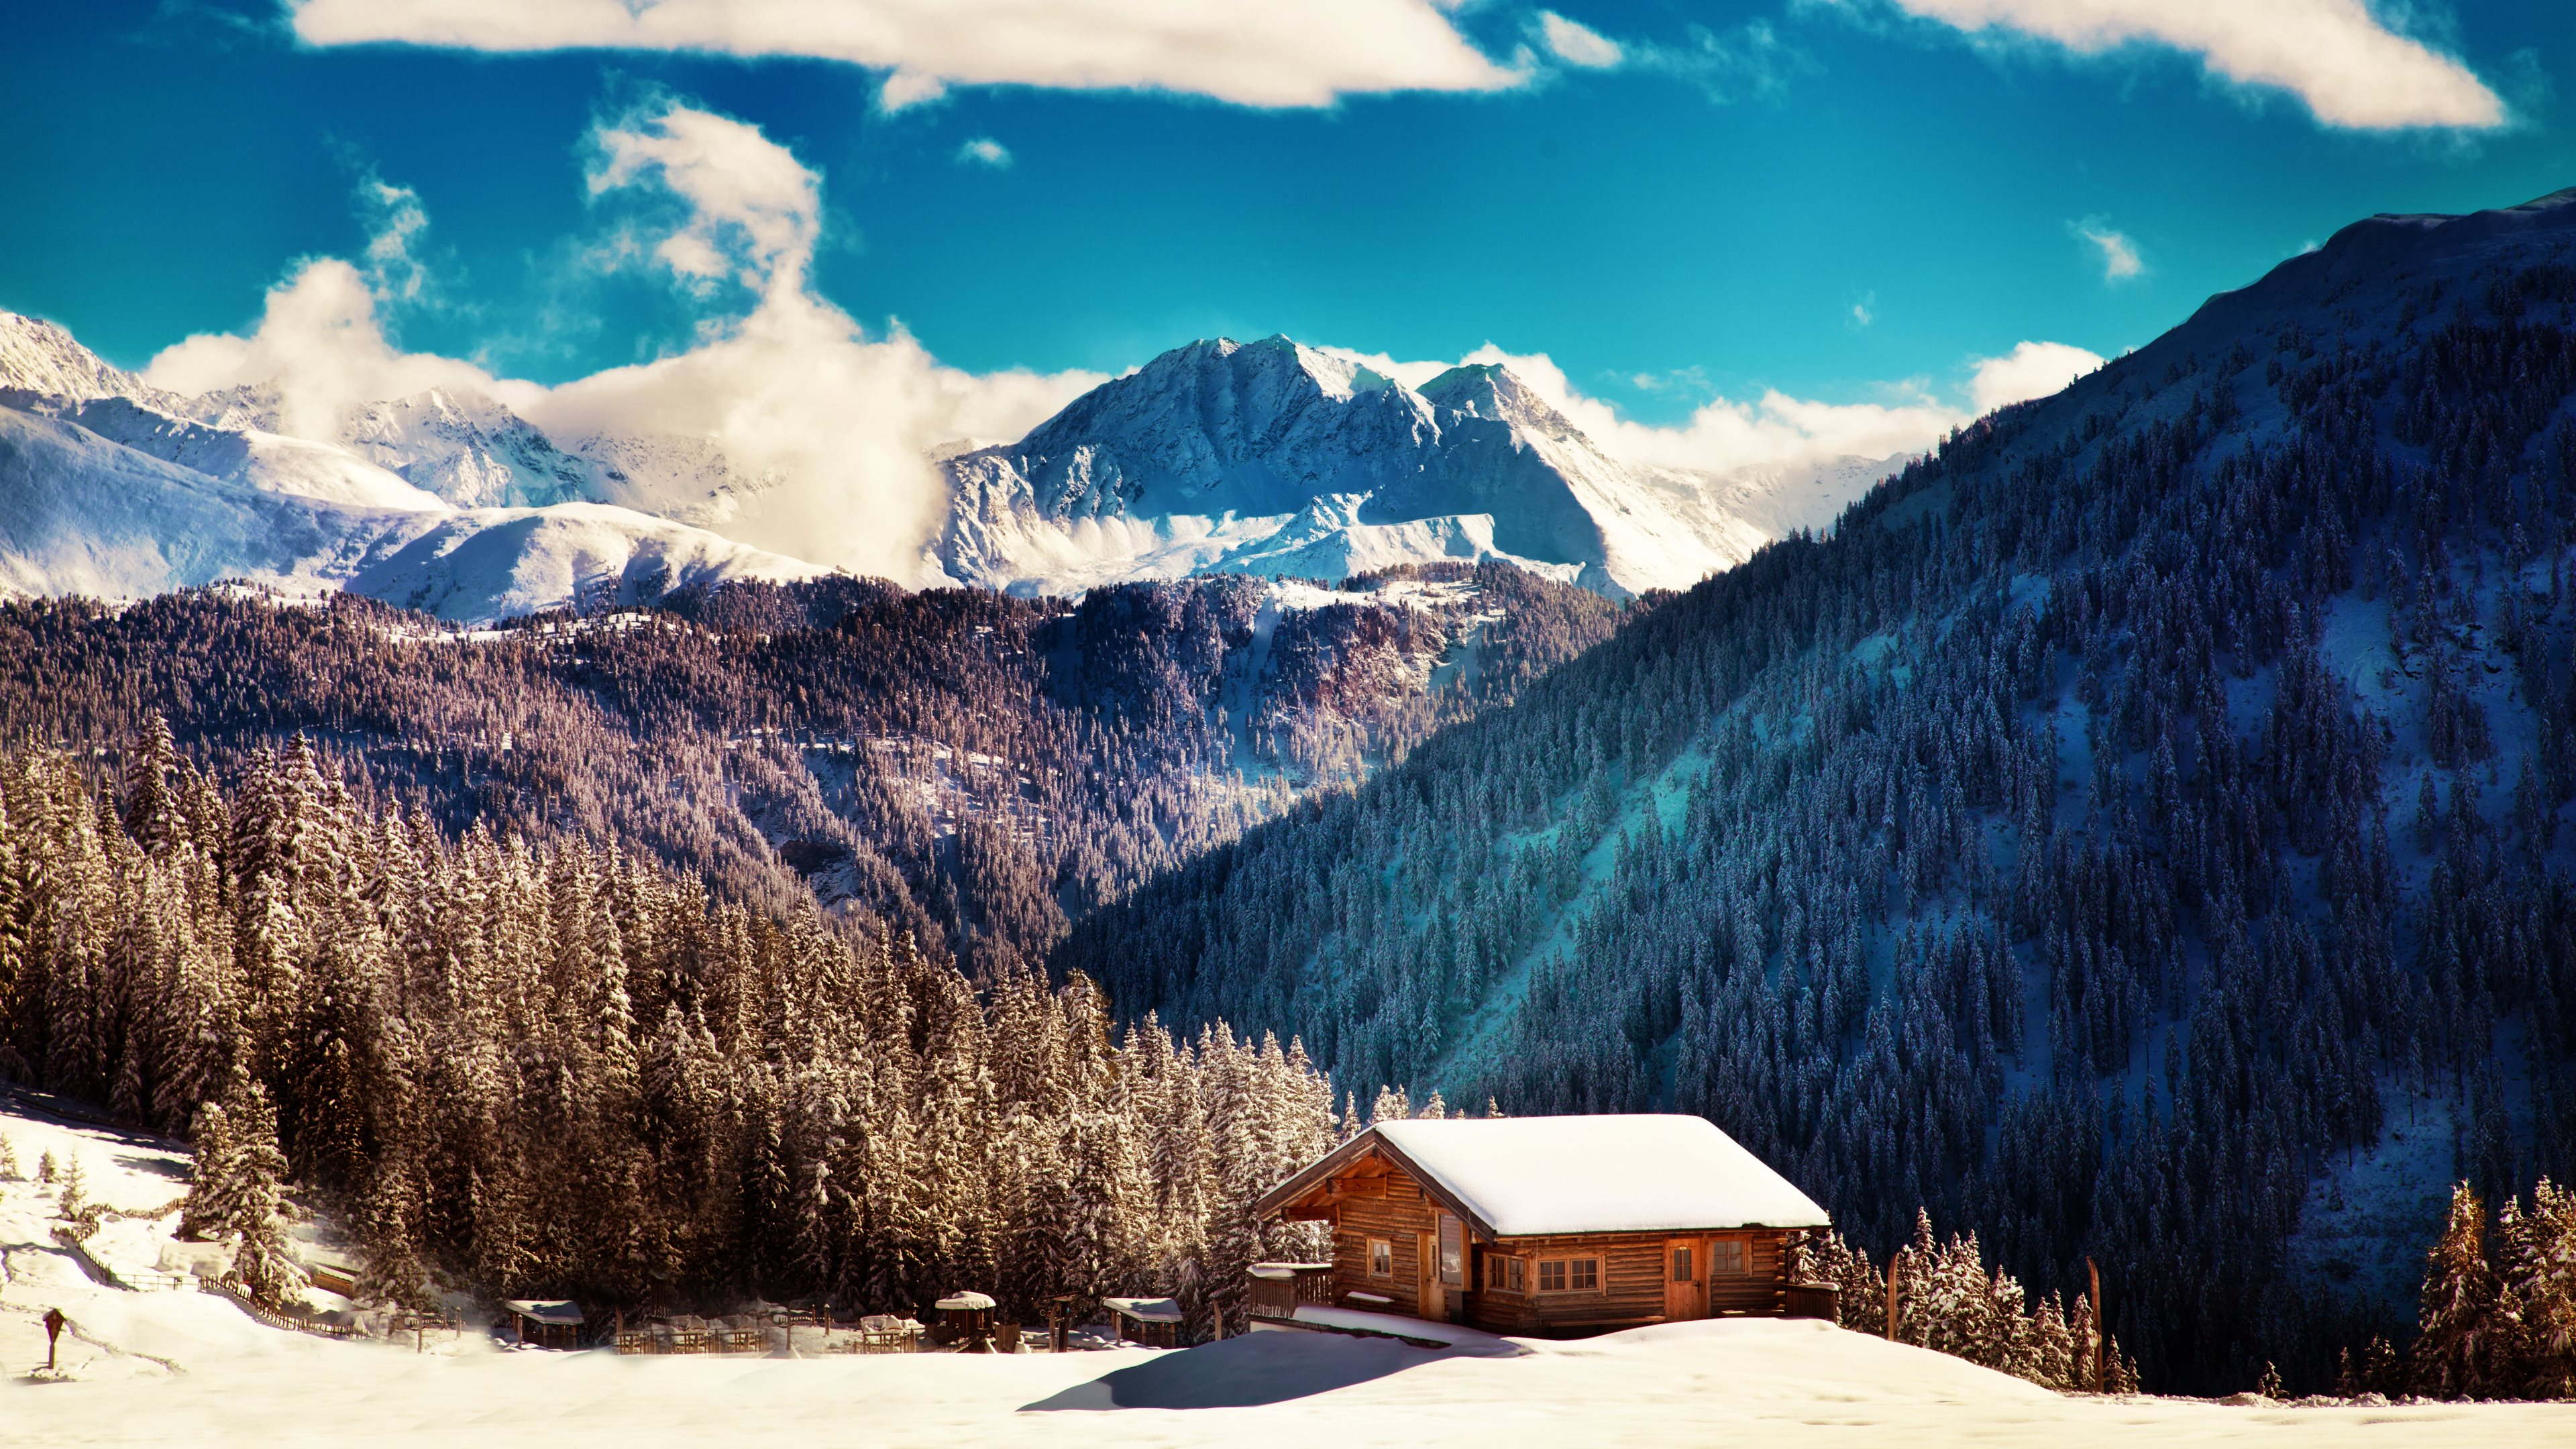 277 Cabin Hd Wallpapers Backgrounds Wallpaper Abyss